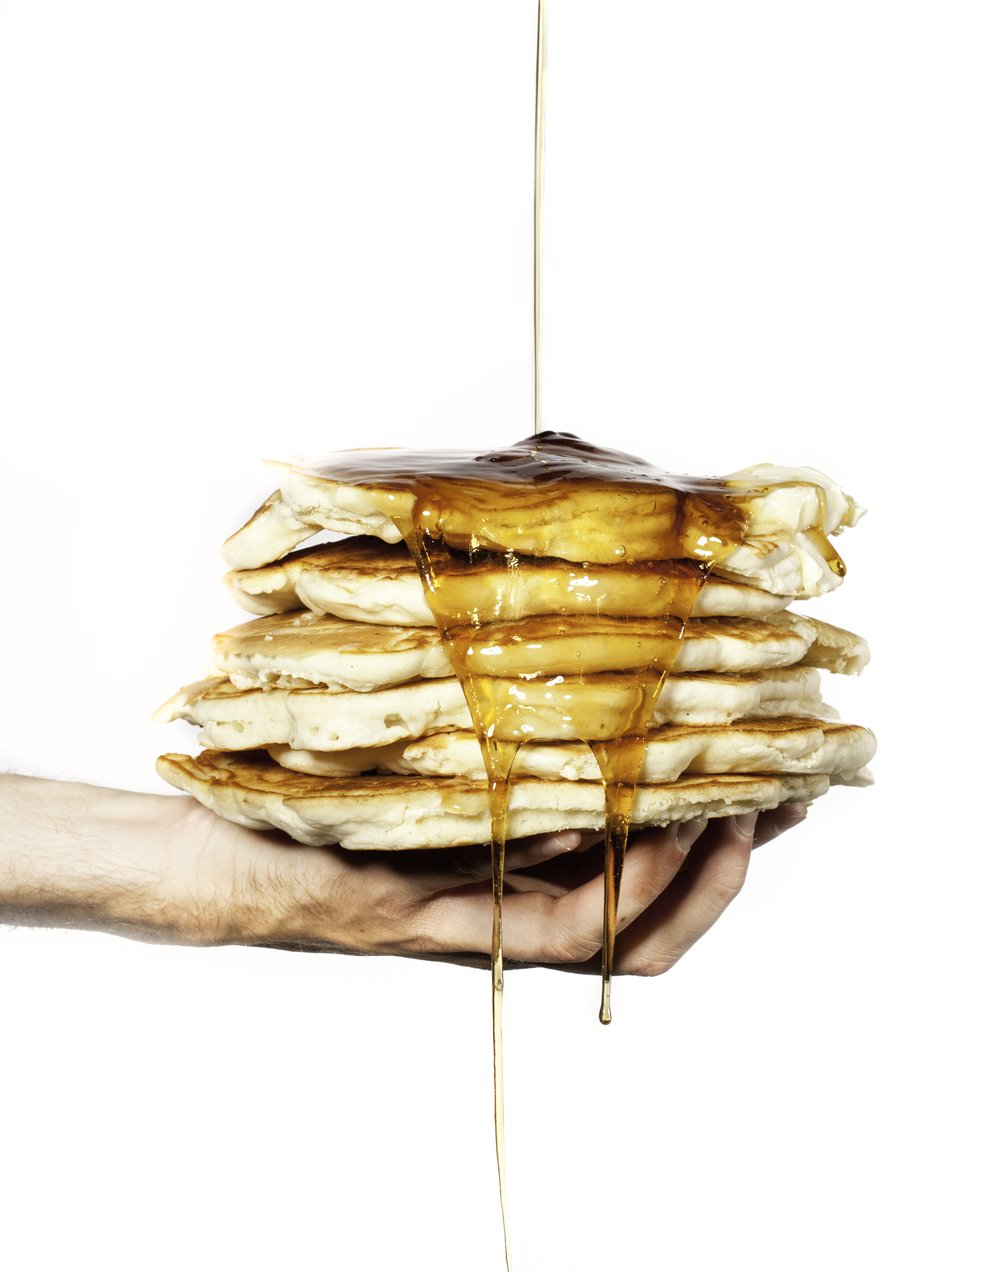 pancake-28_with_hand_web.jpg